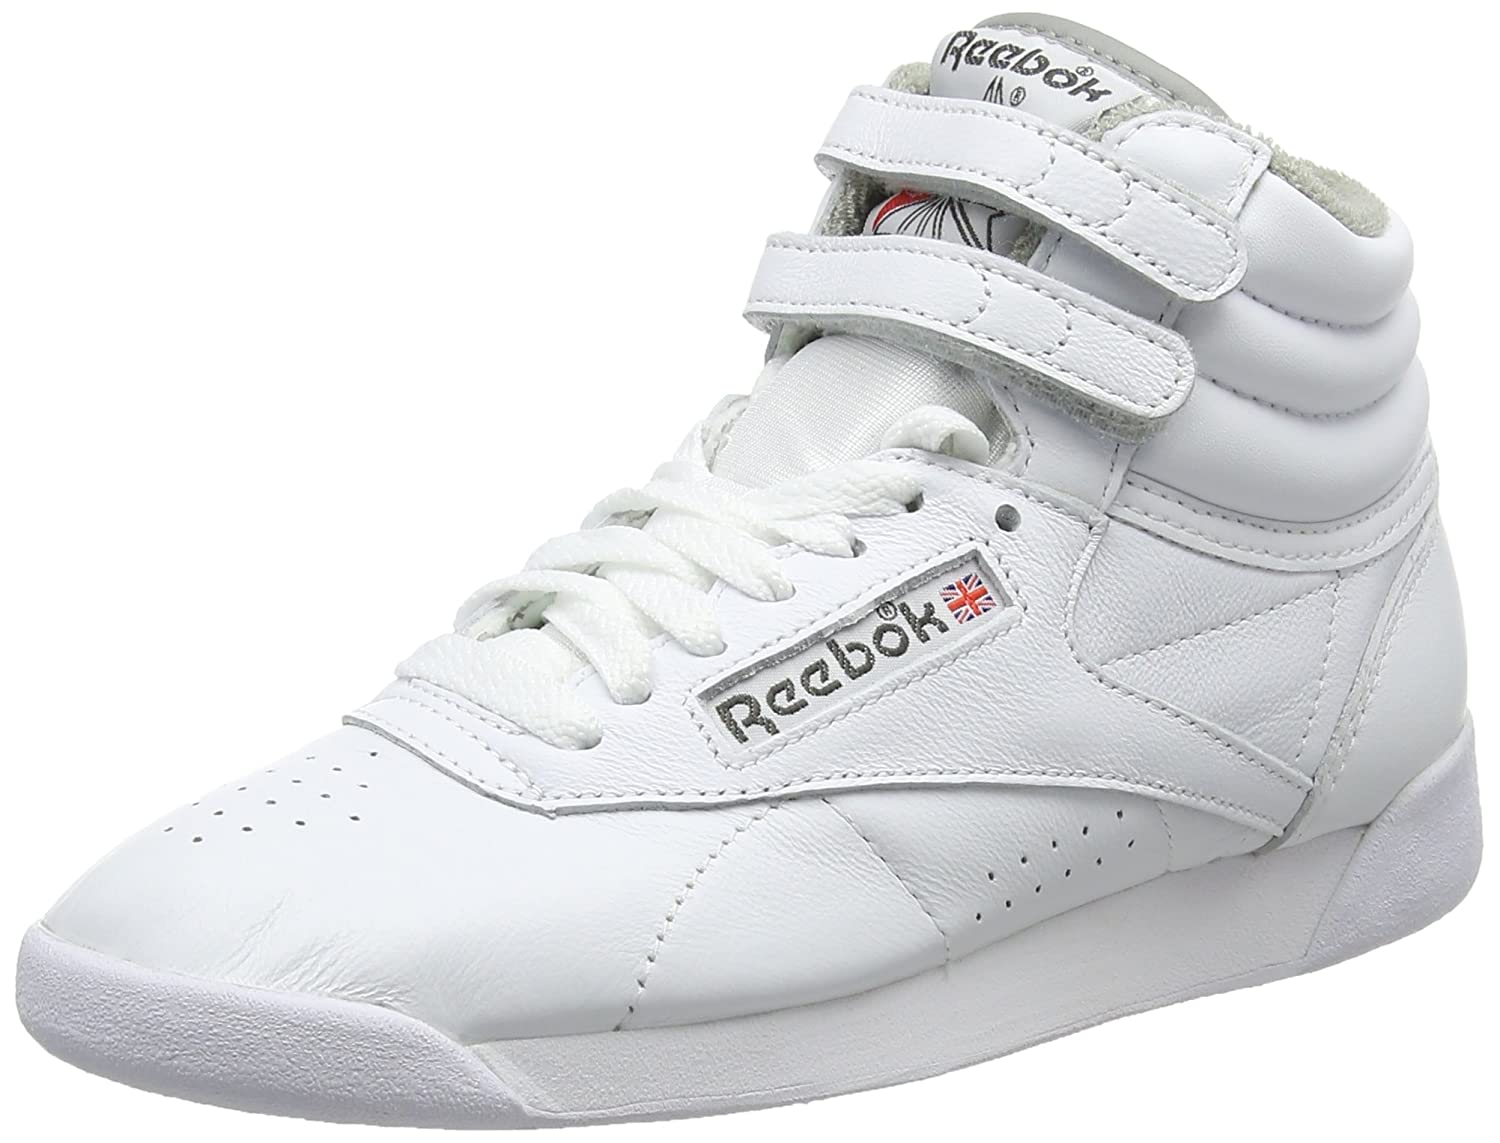 Amazon.com | Reebok Womens F/S Hi-Top Trainers, Multicolour (White/Carbon/Red/Grey White/Carbon/Red/Grey), 6 UK 38.5 EU | Fashion Sneakers